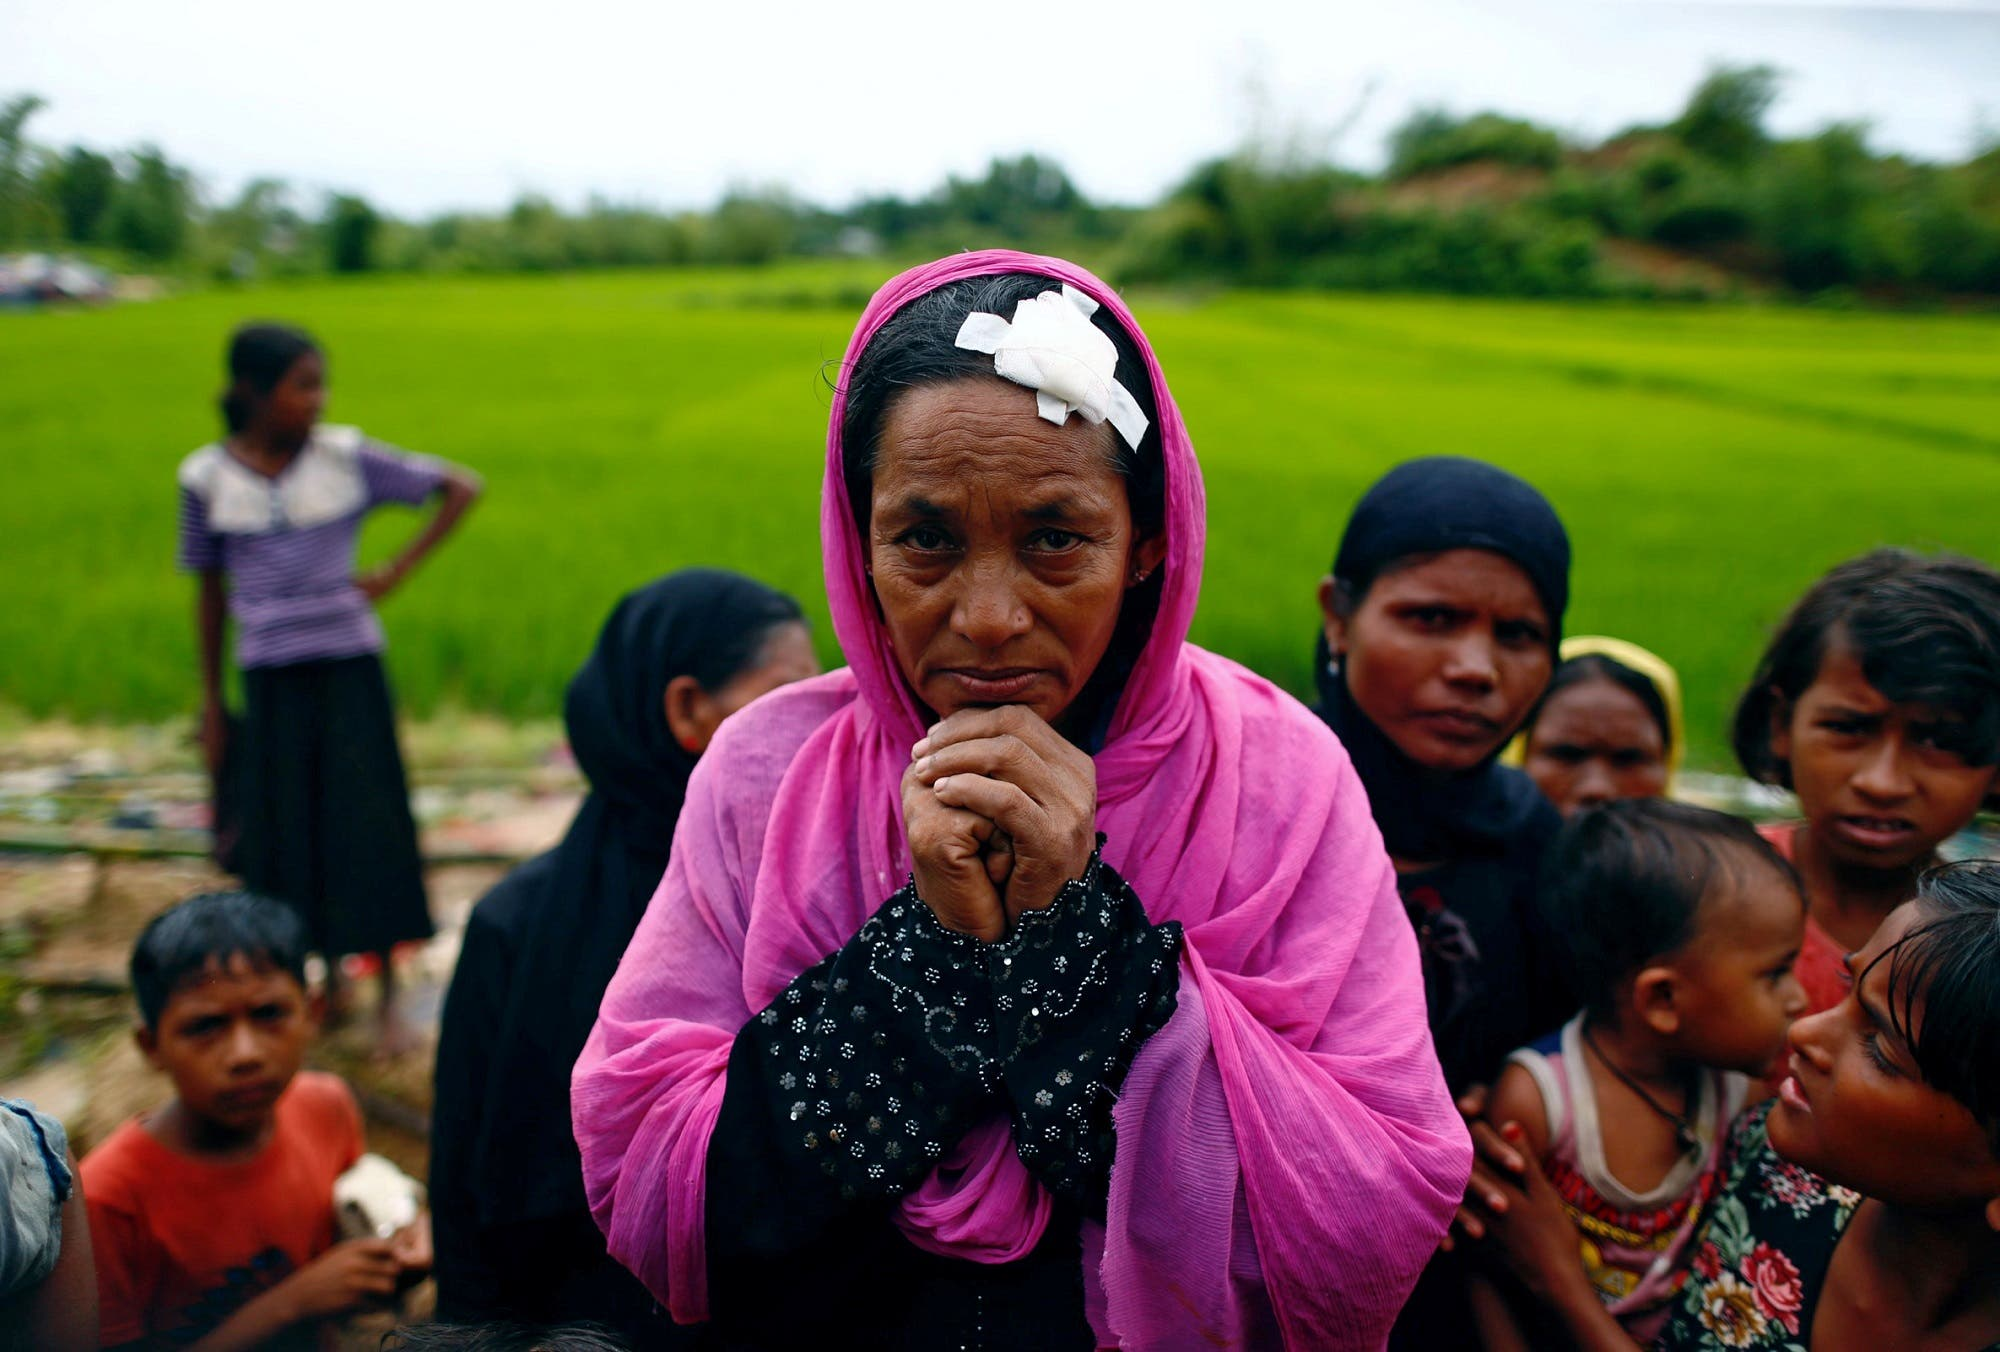 Noorjehan, 40, who said she was injured by a shrapnel when Myanmar army fired at her house, waits for aid in Cox's Bazar, Bangladesh September 20, 2017. (Reuters)